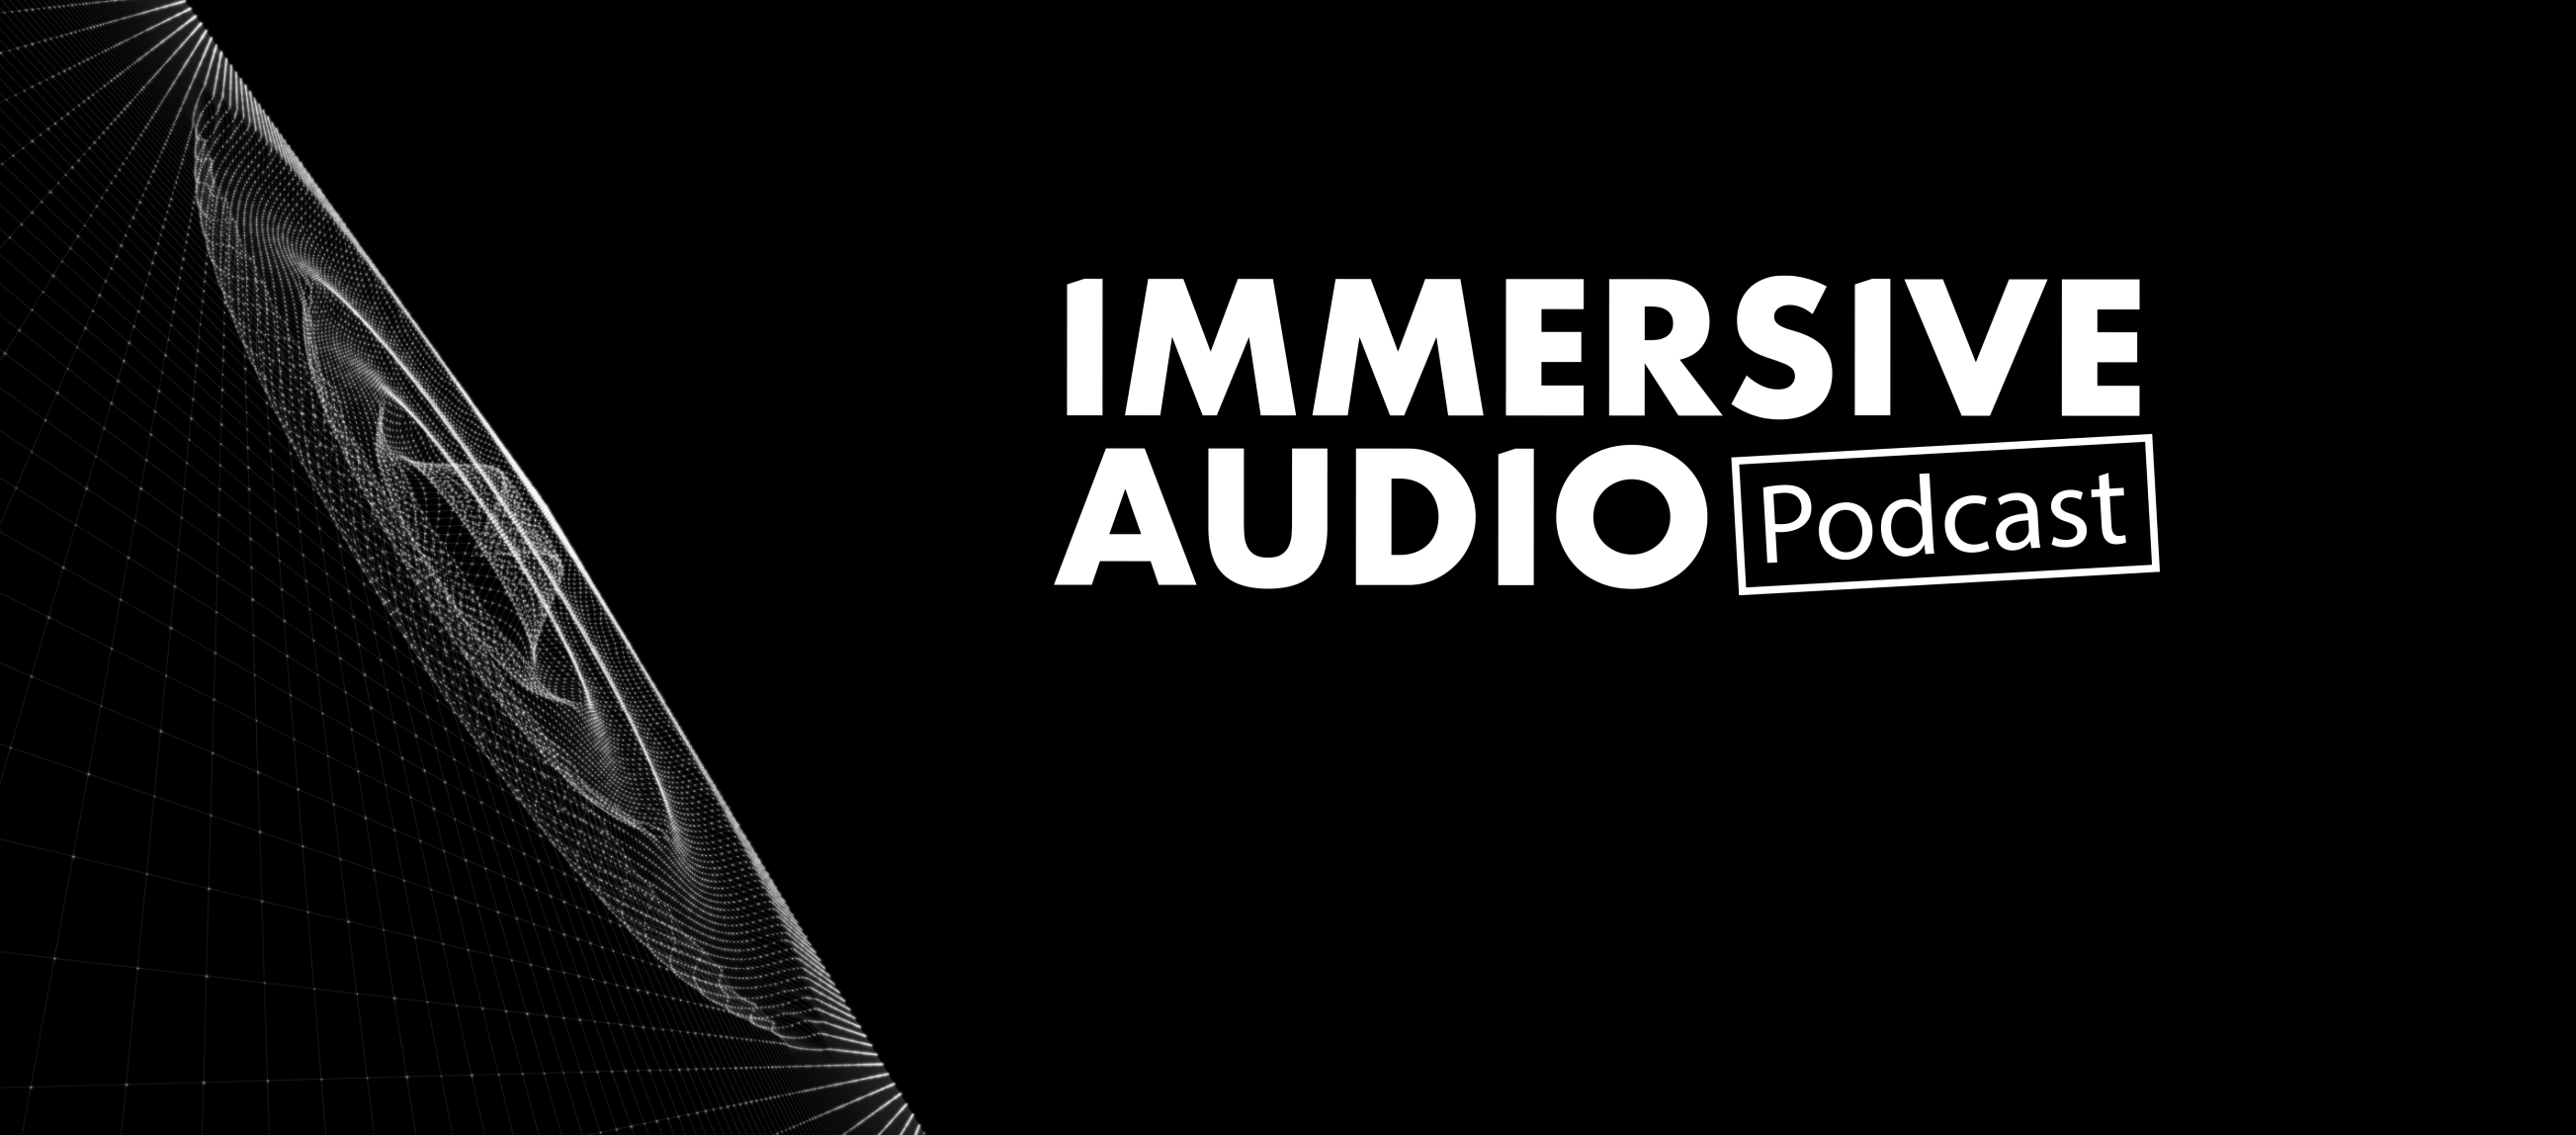 Immersive Audio Podcast – Episode 15 Gavin Kearney